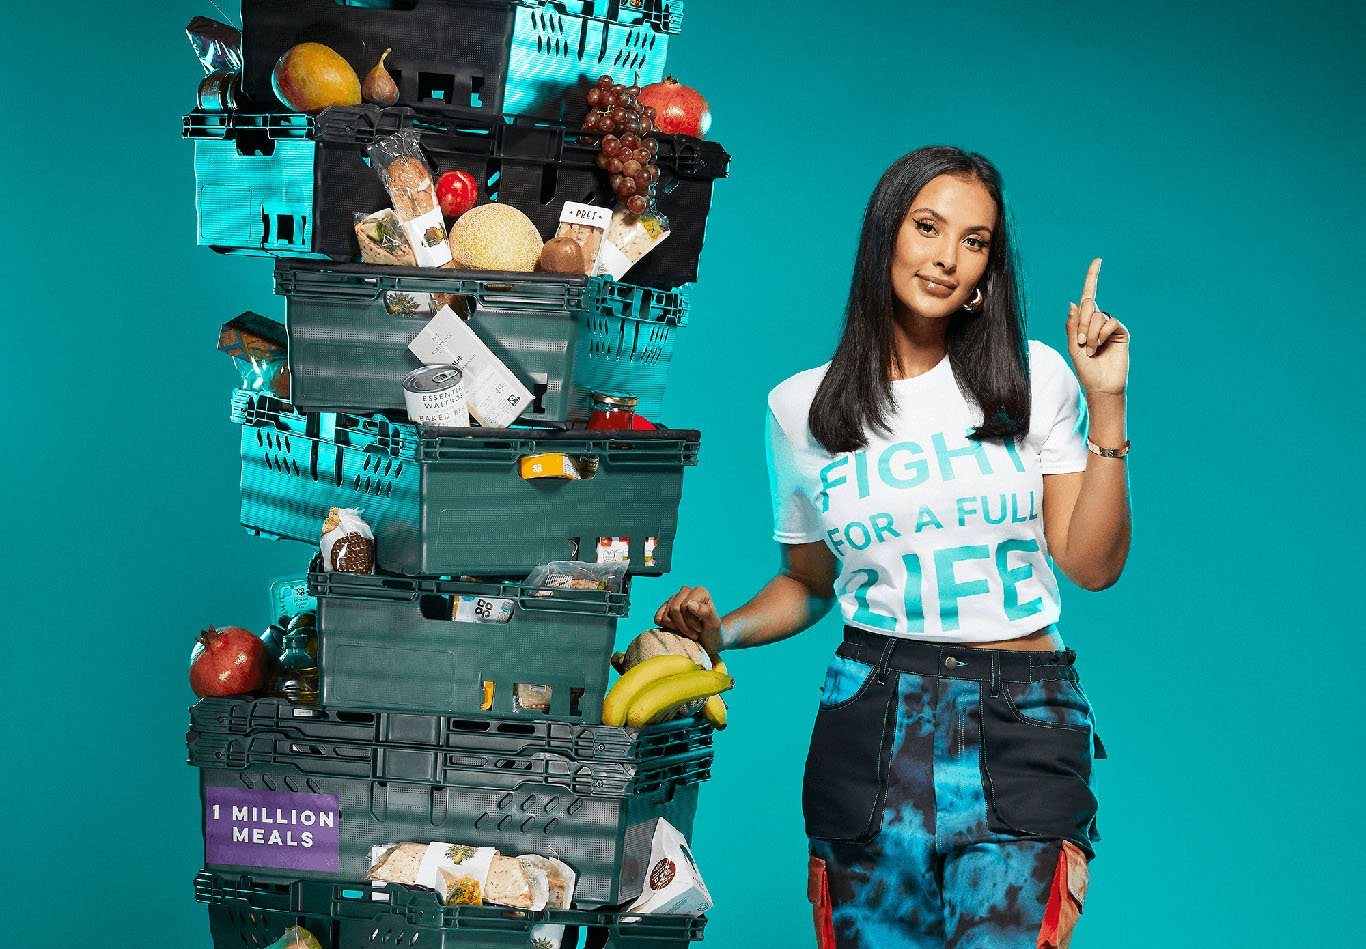 Maya Jama stands next to stacked baskets of food produce for Deliveroo's new campaign to donate one million meals to people in need